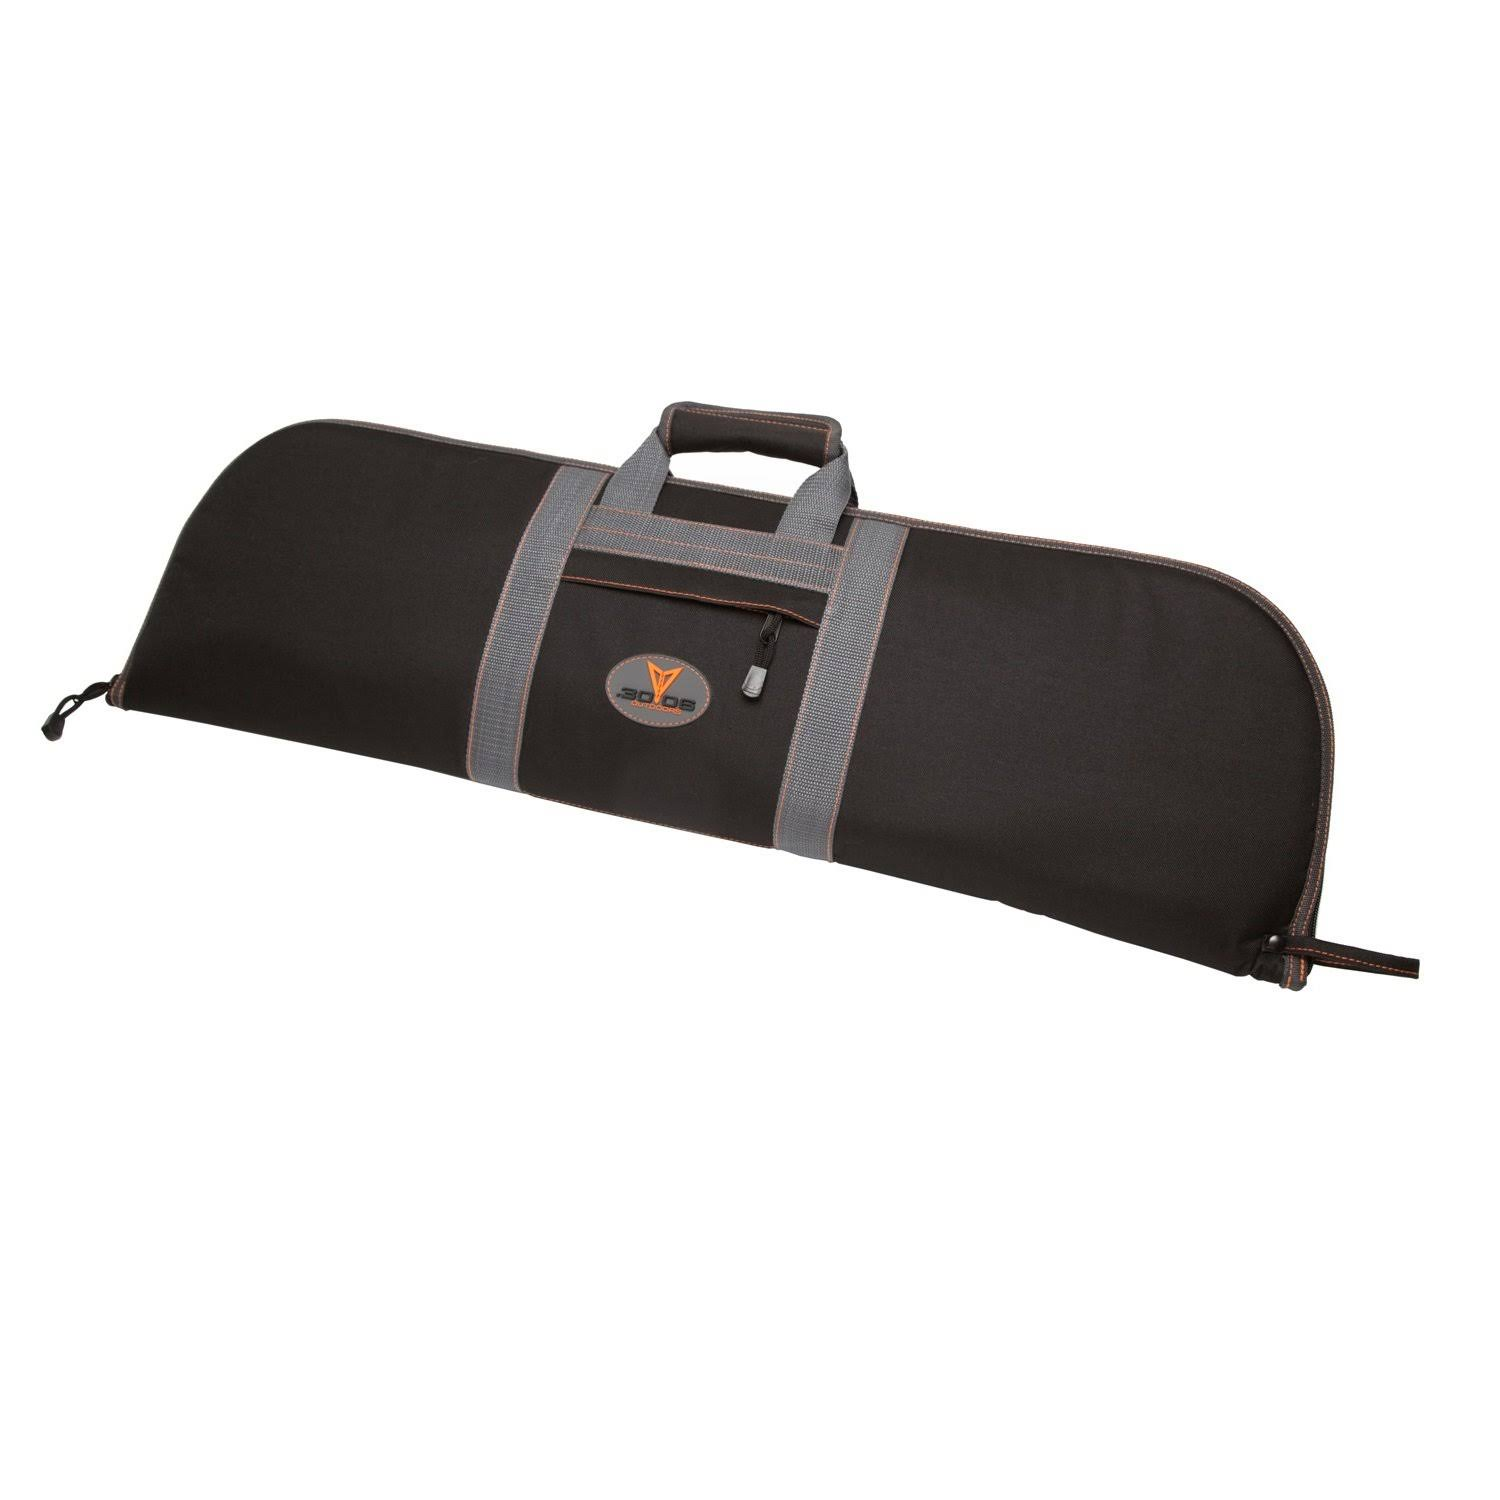 30-06 Shadow Takedown Recurve Bow Case - Black